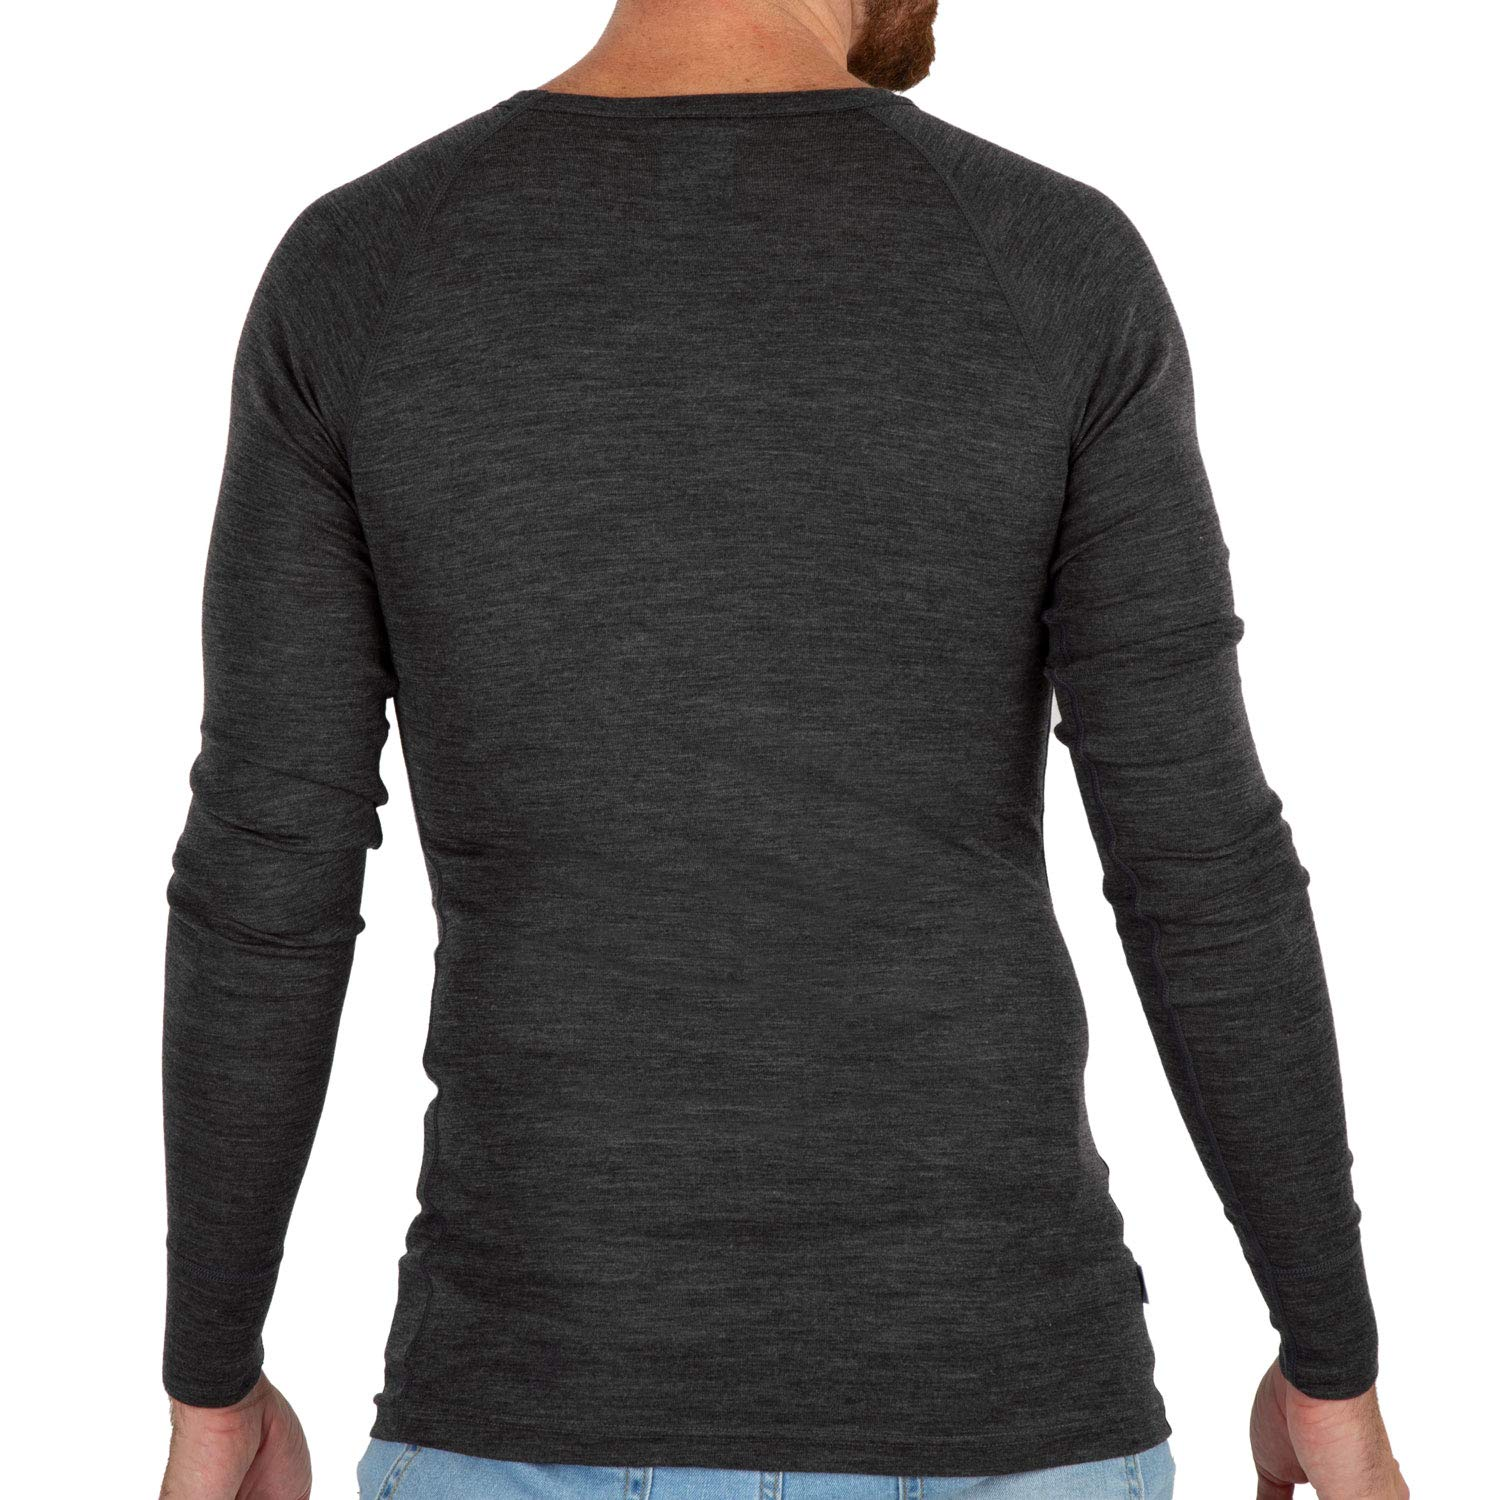 fa633777 MERIWOOL Mens Merino Wool Lightweight Form Fit Baselayer Pullover Top at  Amazon Men's Clothing store: